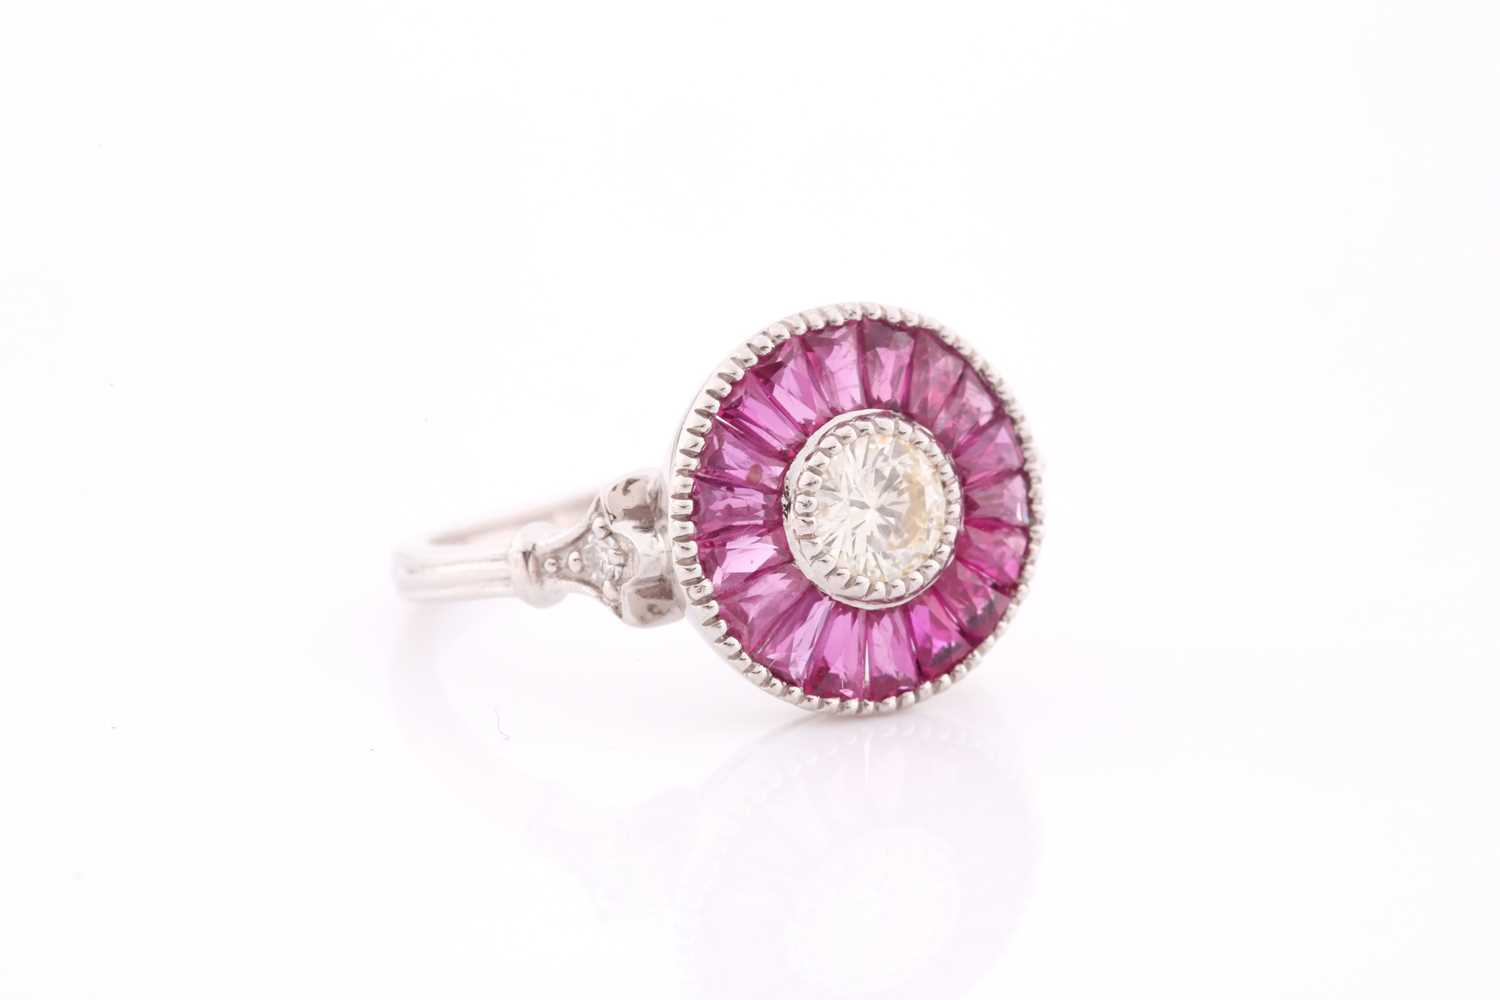 A diamond and ruby target ring, in the Art Deco style, centred with a round brilliant-cut diamond, - Image 2 of 4